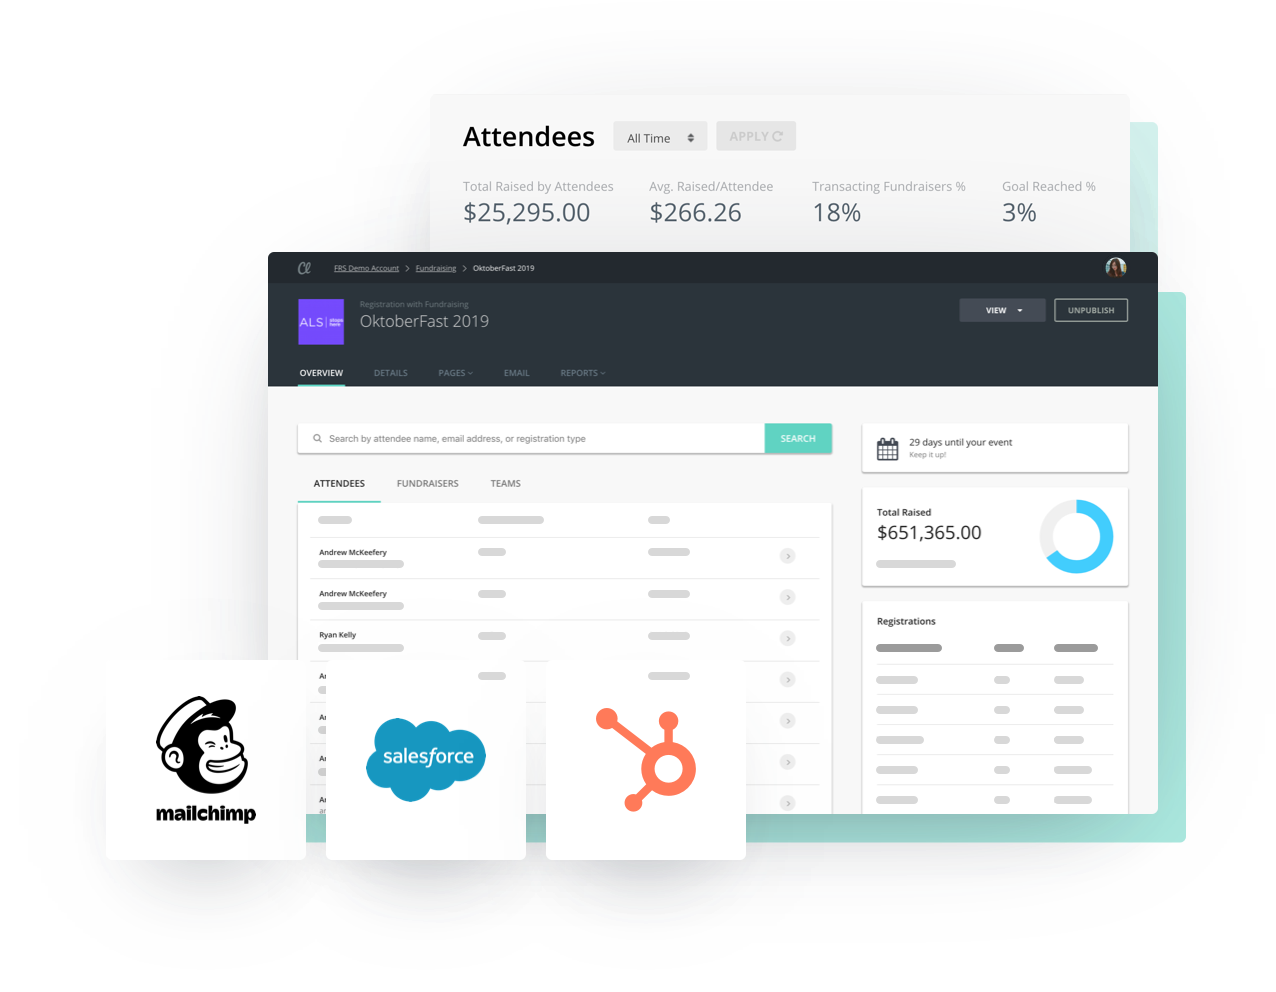 Examples of Classy's attendee and event management dashboards that integrate with MailChimp, Hubspot, and Salesforce